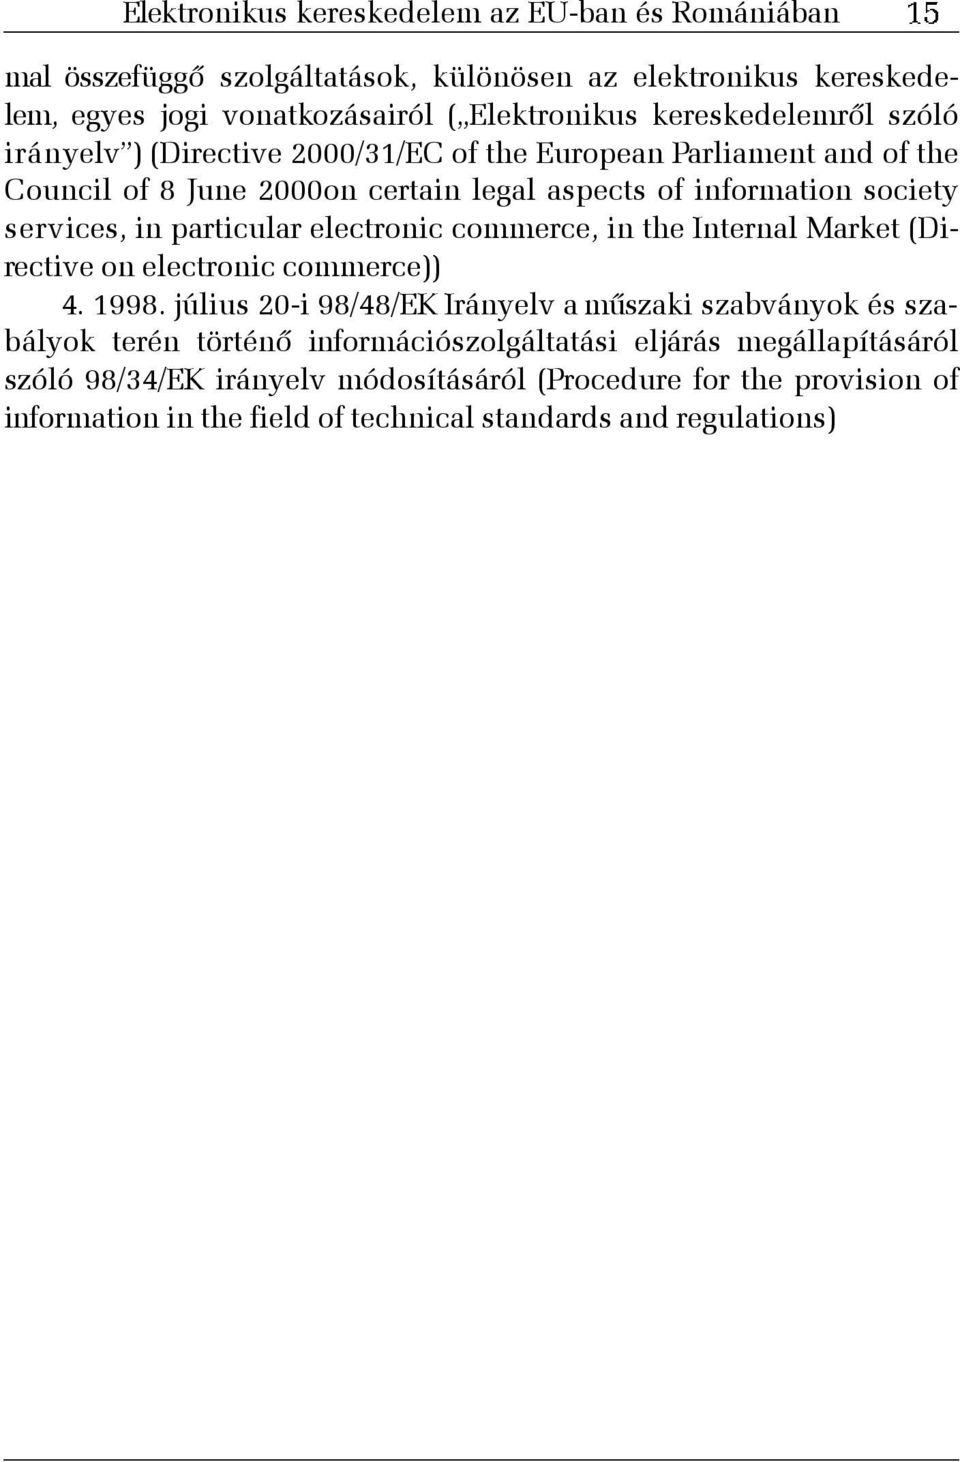 in particular electronic commerce, in the Internal Market (Directive on electronic commerce)) 4. 1998.